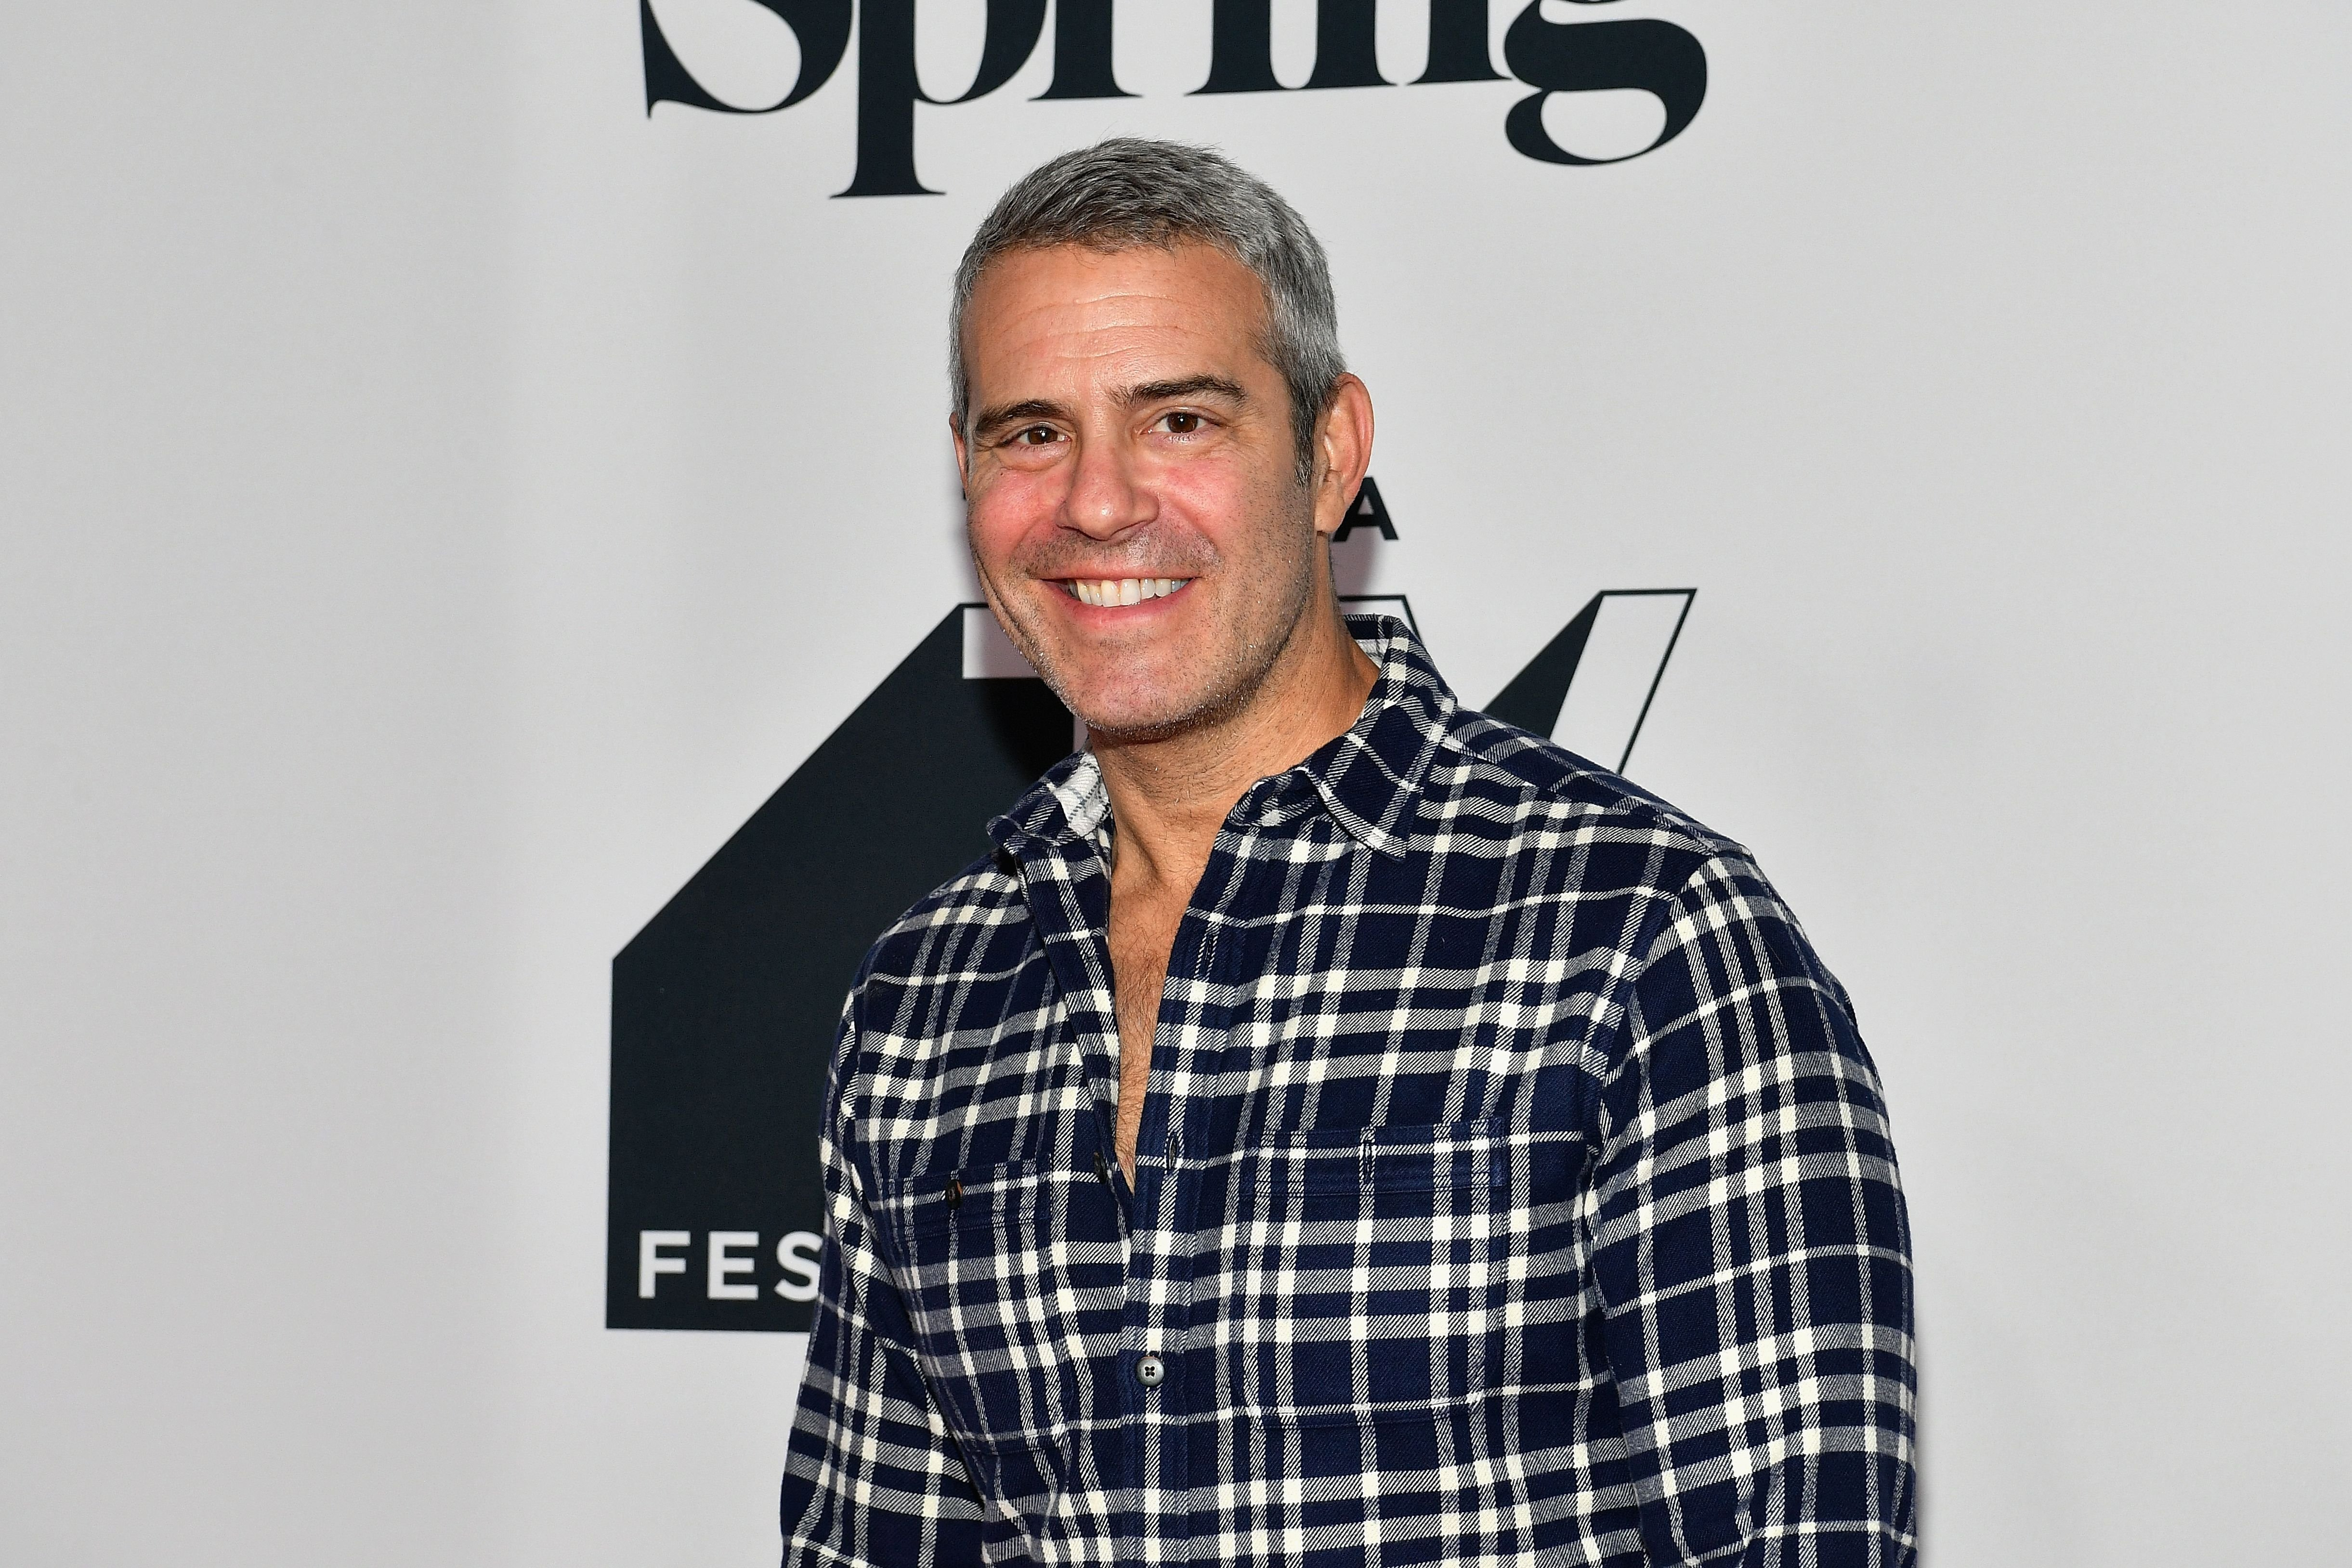 Andy Cohen during the Tribeca talks panel during the 2018 Tribeca TV Festival on September 23, 2018. | Source: Getty Images